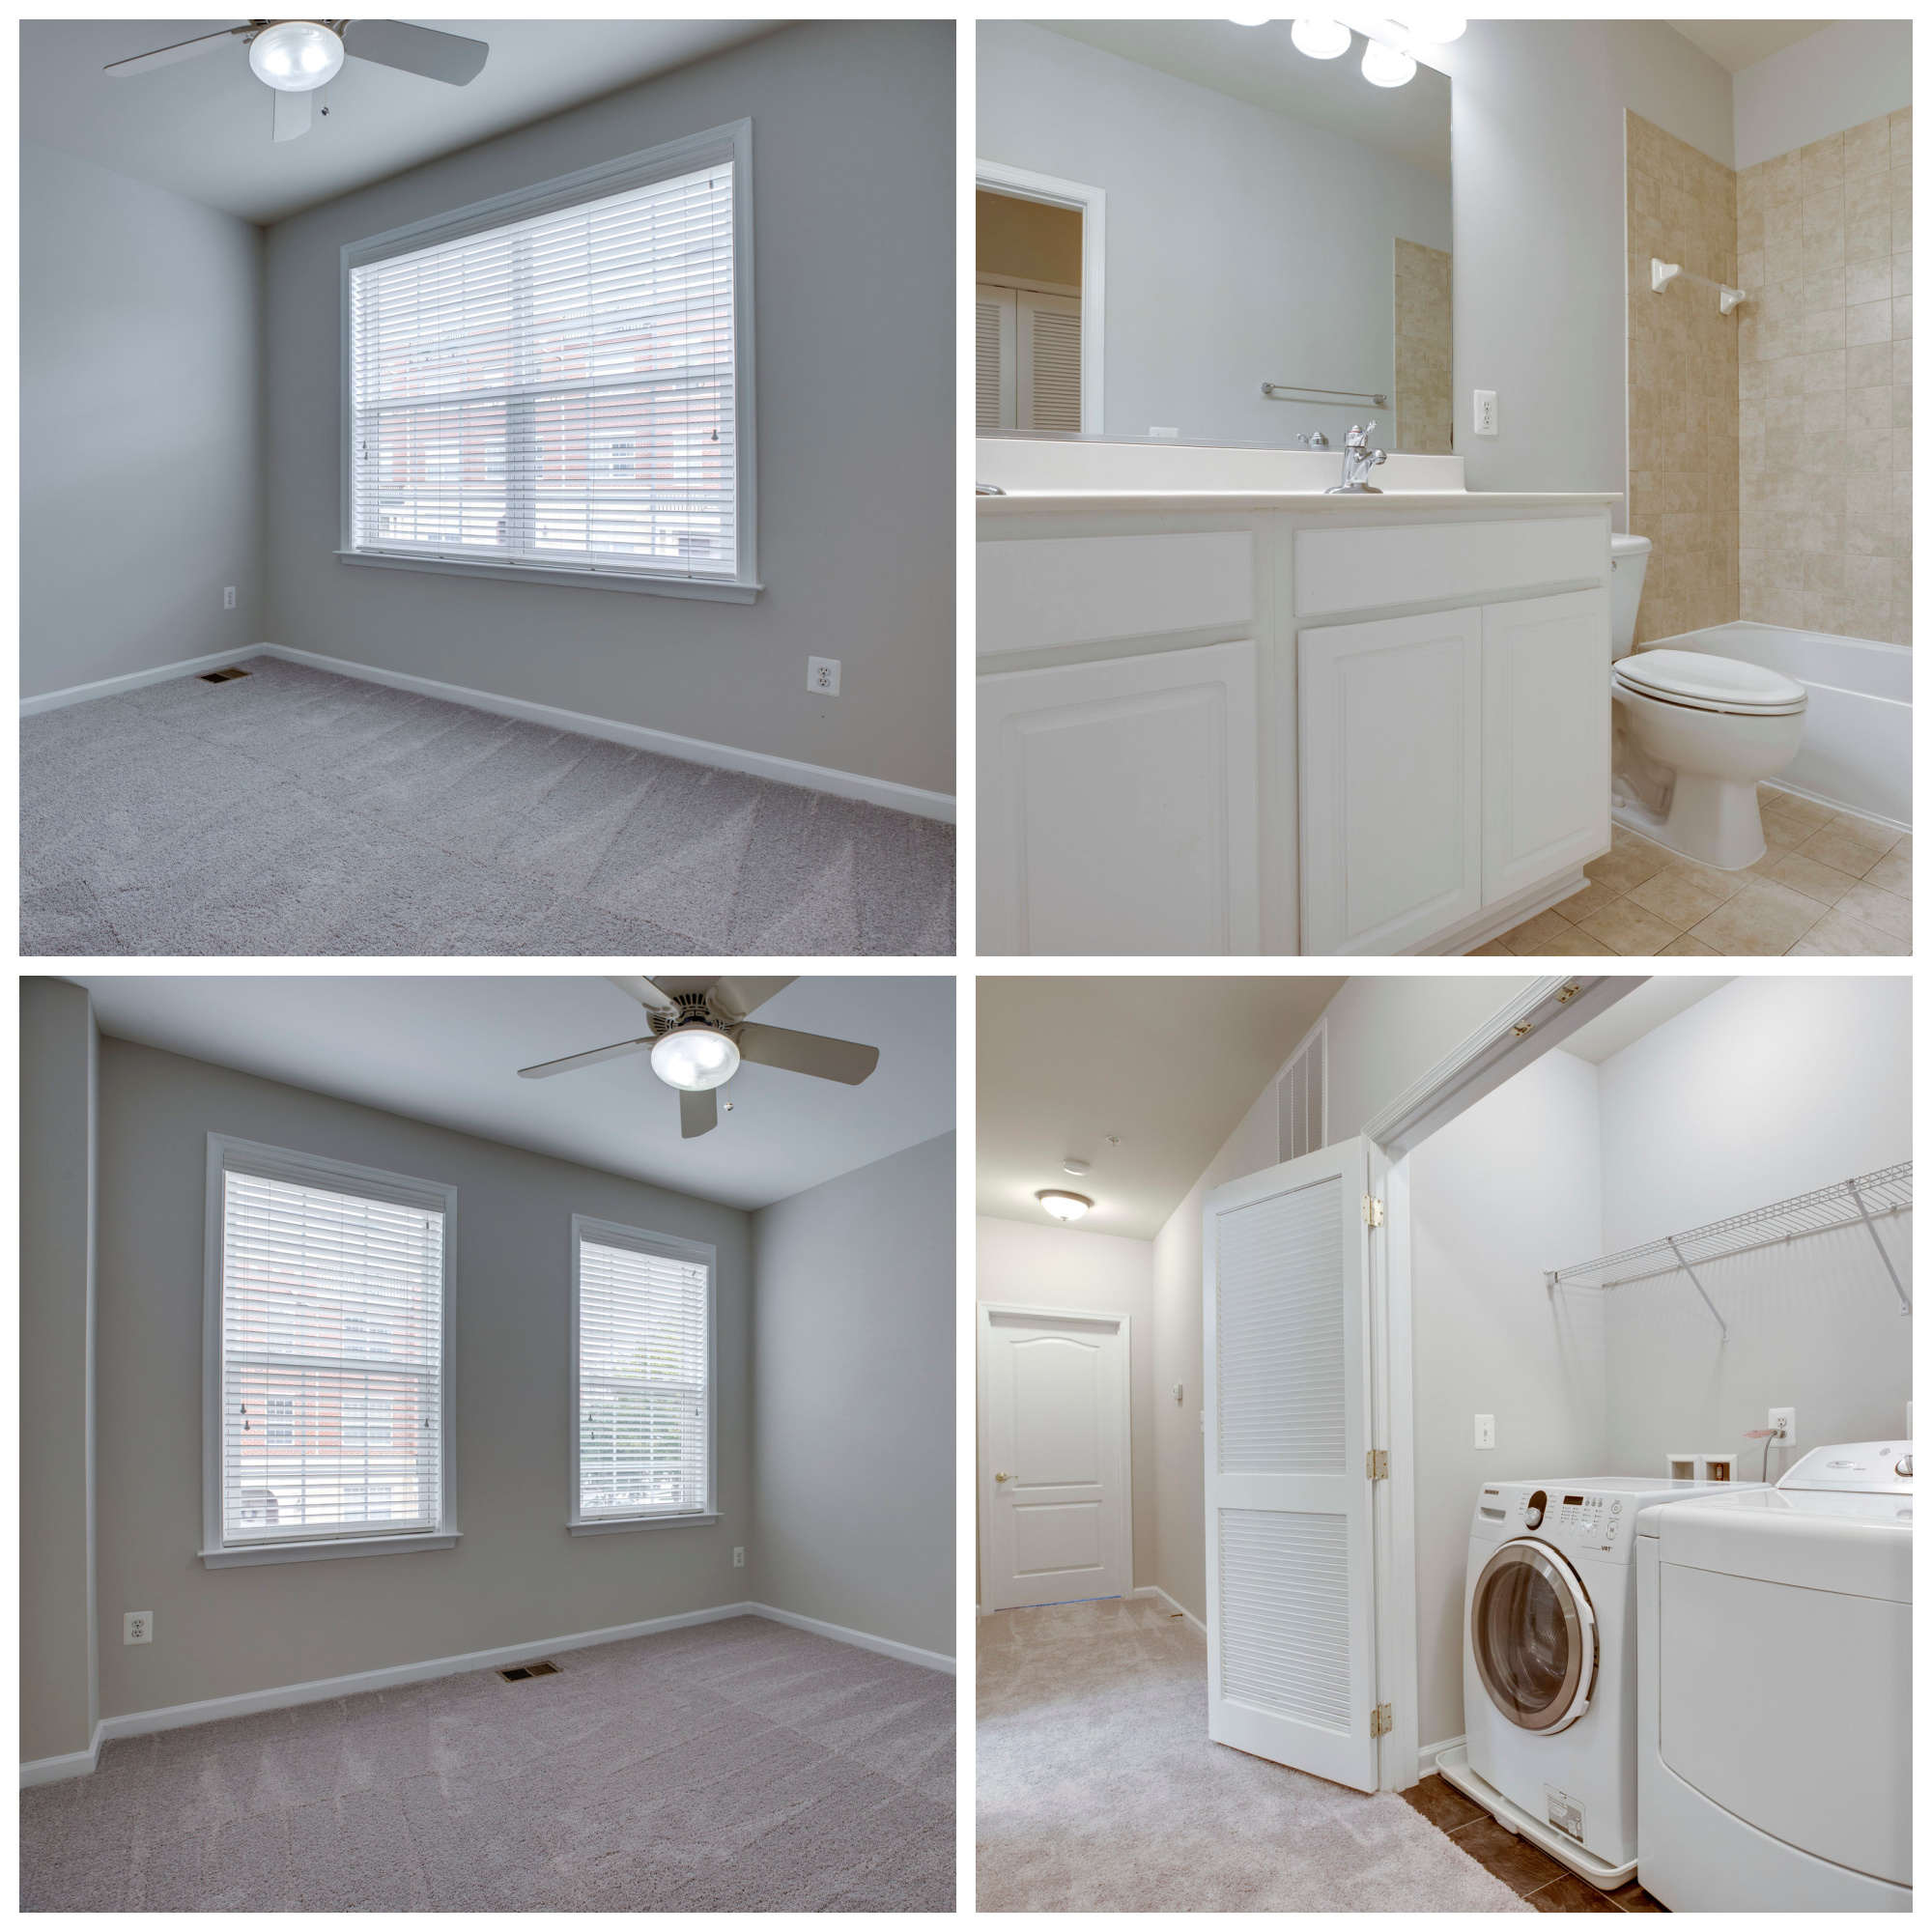 42637 Highgate Ter, Brambleton- Additional Bedrooms, Bathrooms, and Laundry